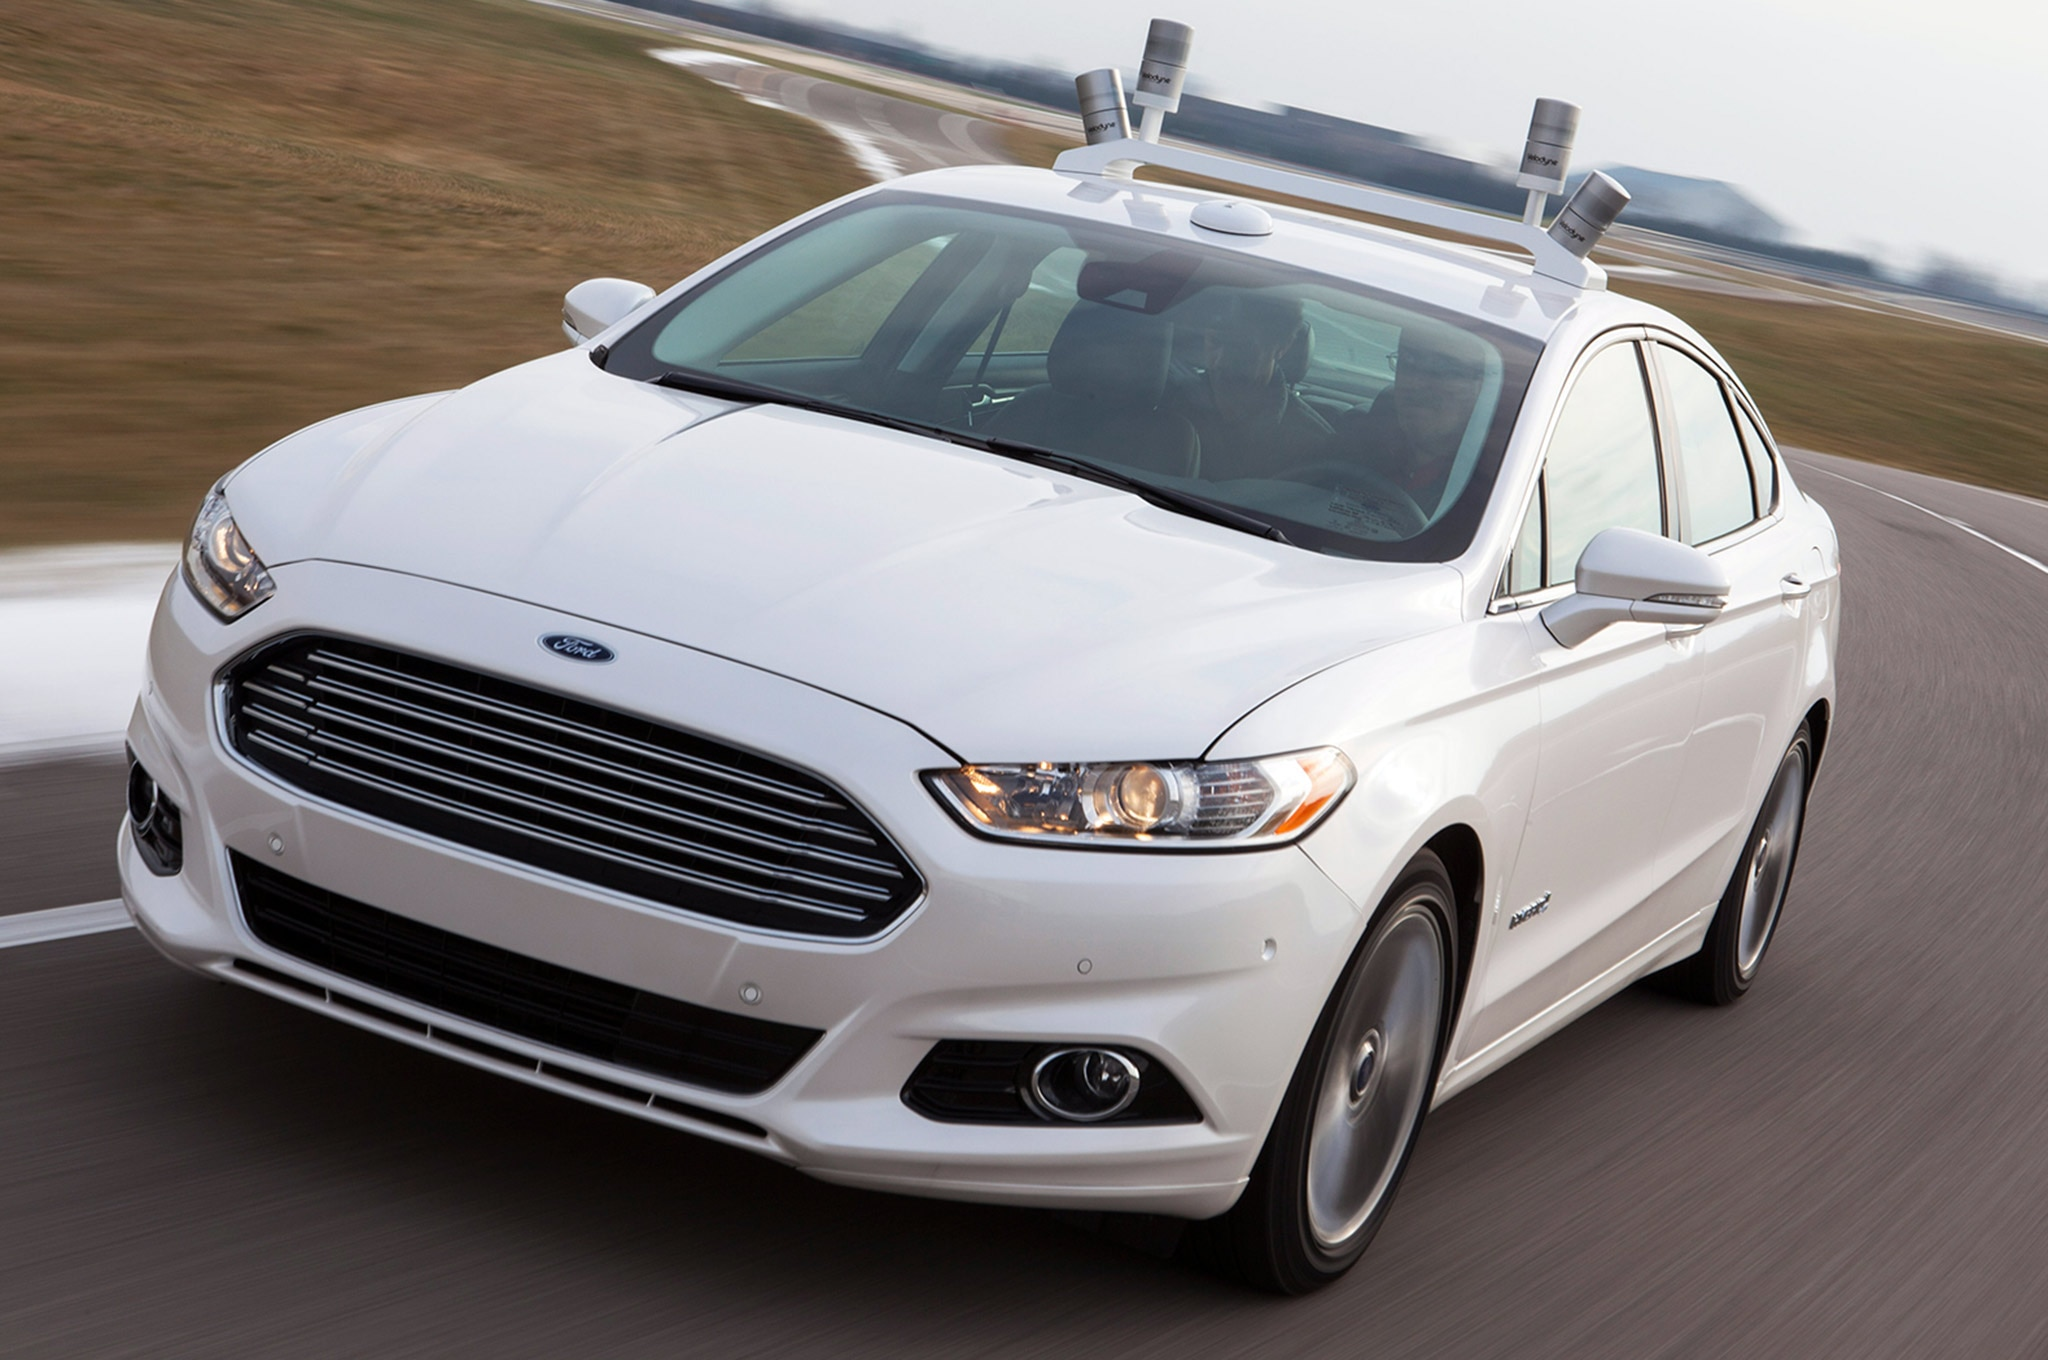 001 Ford Google Self Driving Car Accidents Fusion